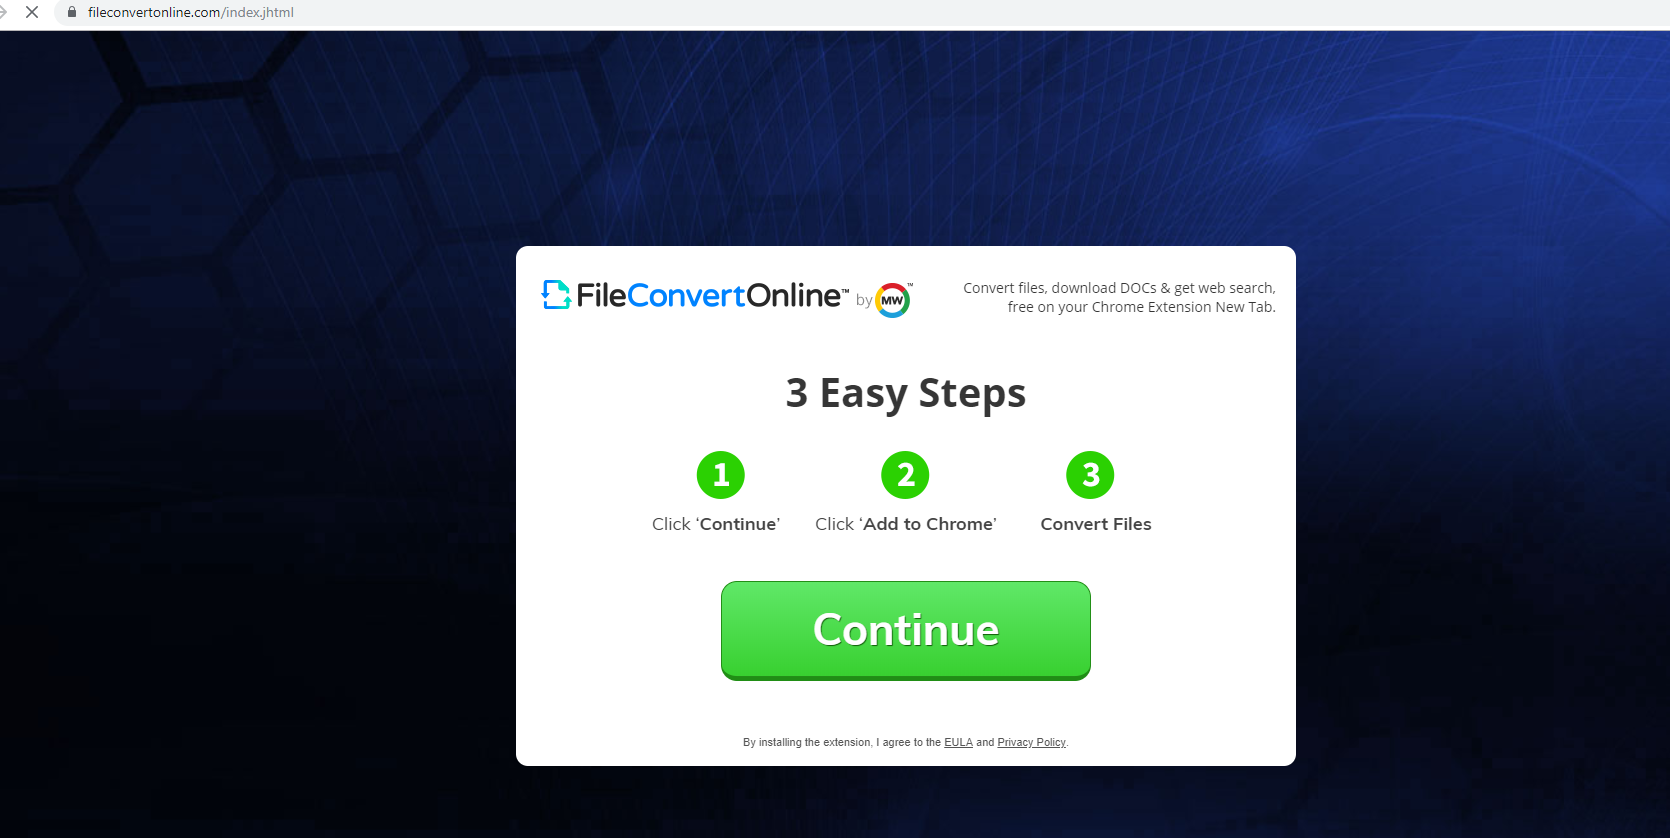 Ta bort FileConvertOnline